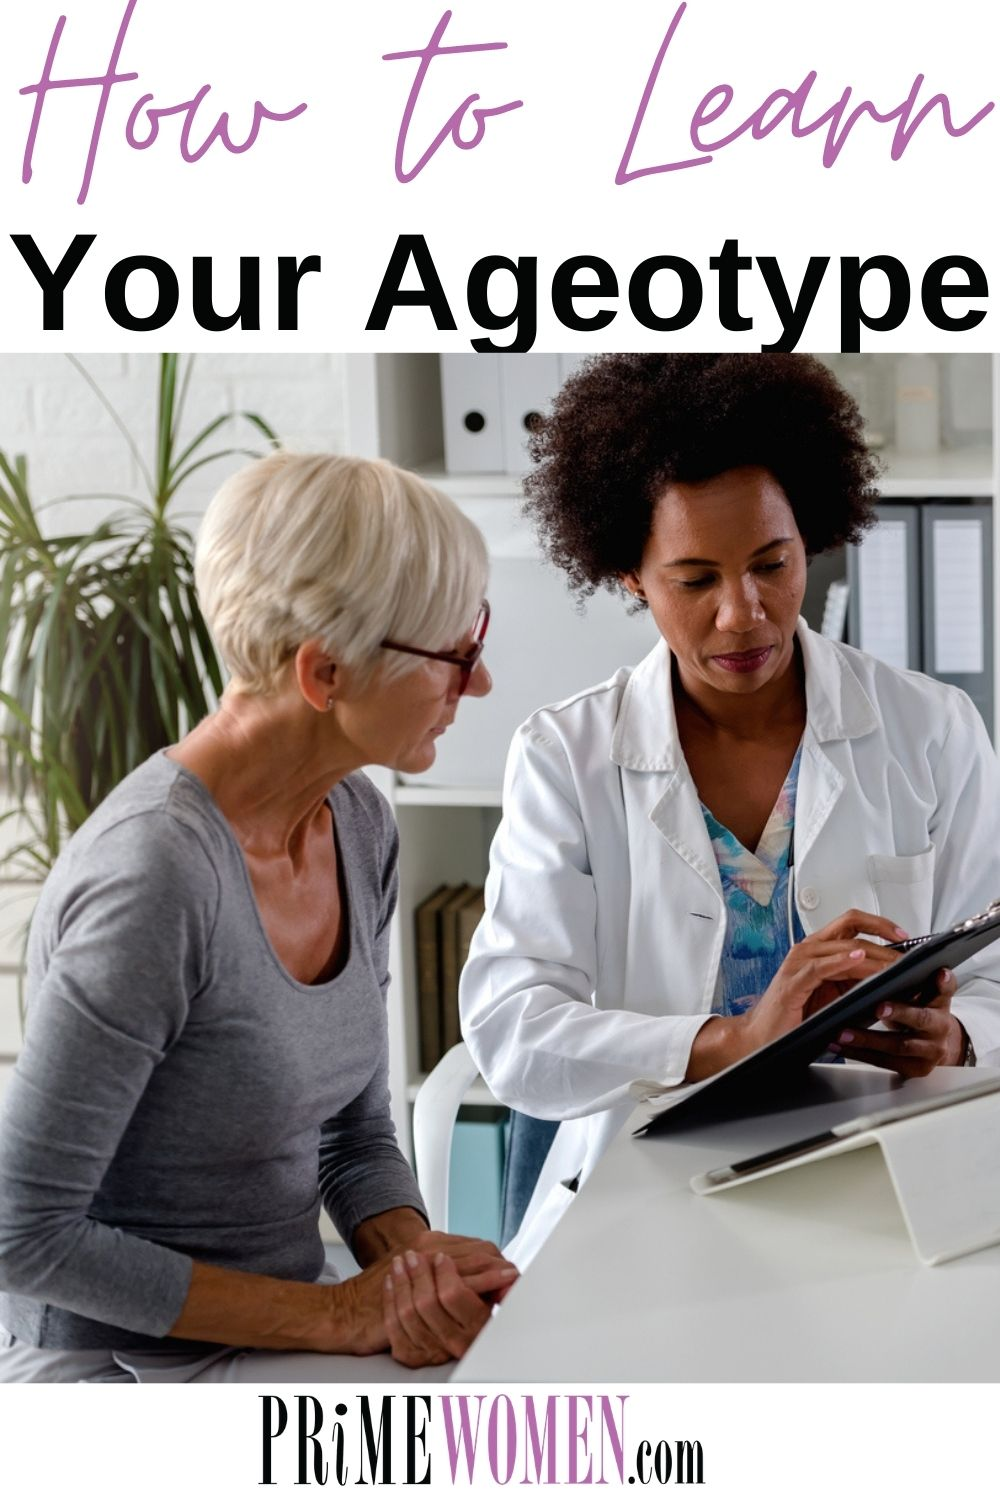 How to Learn Your Ageotype